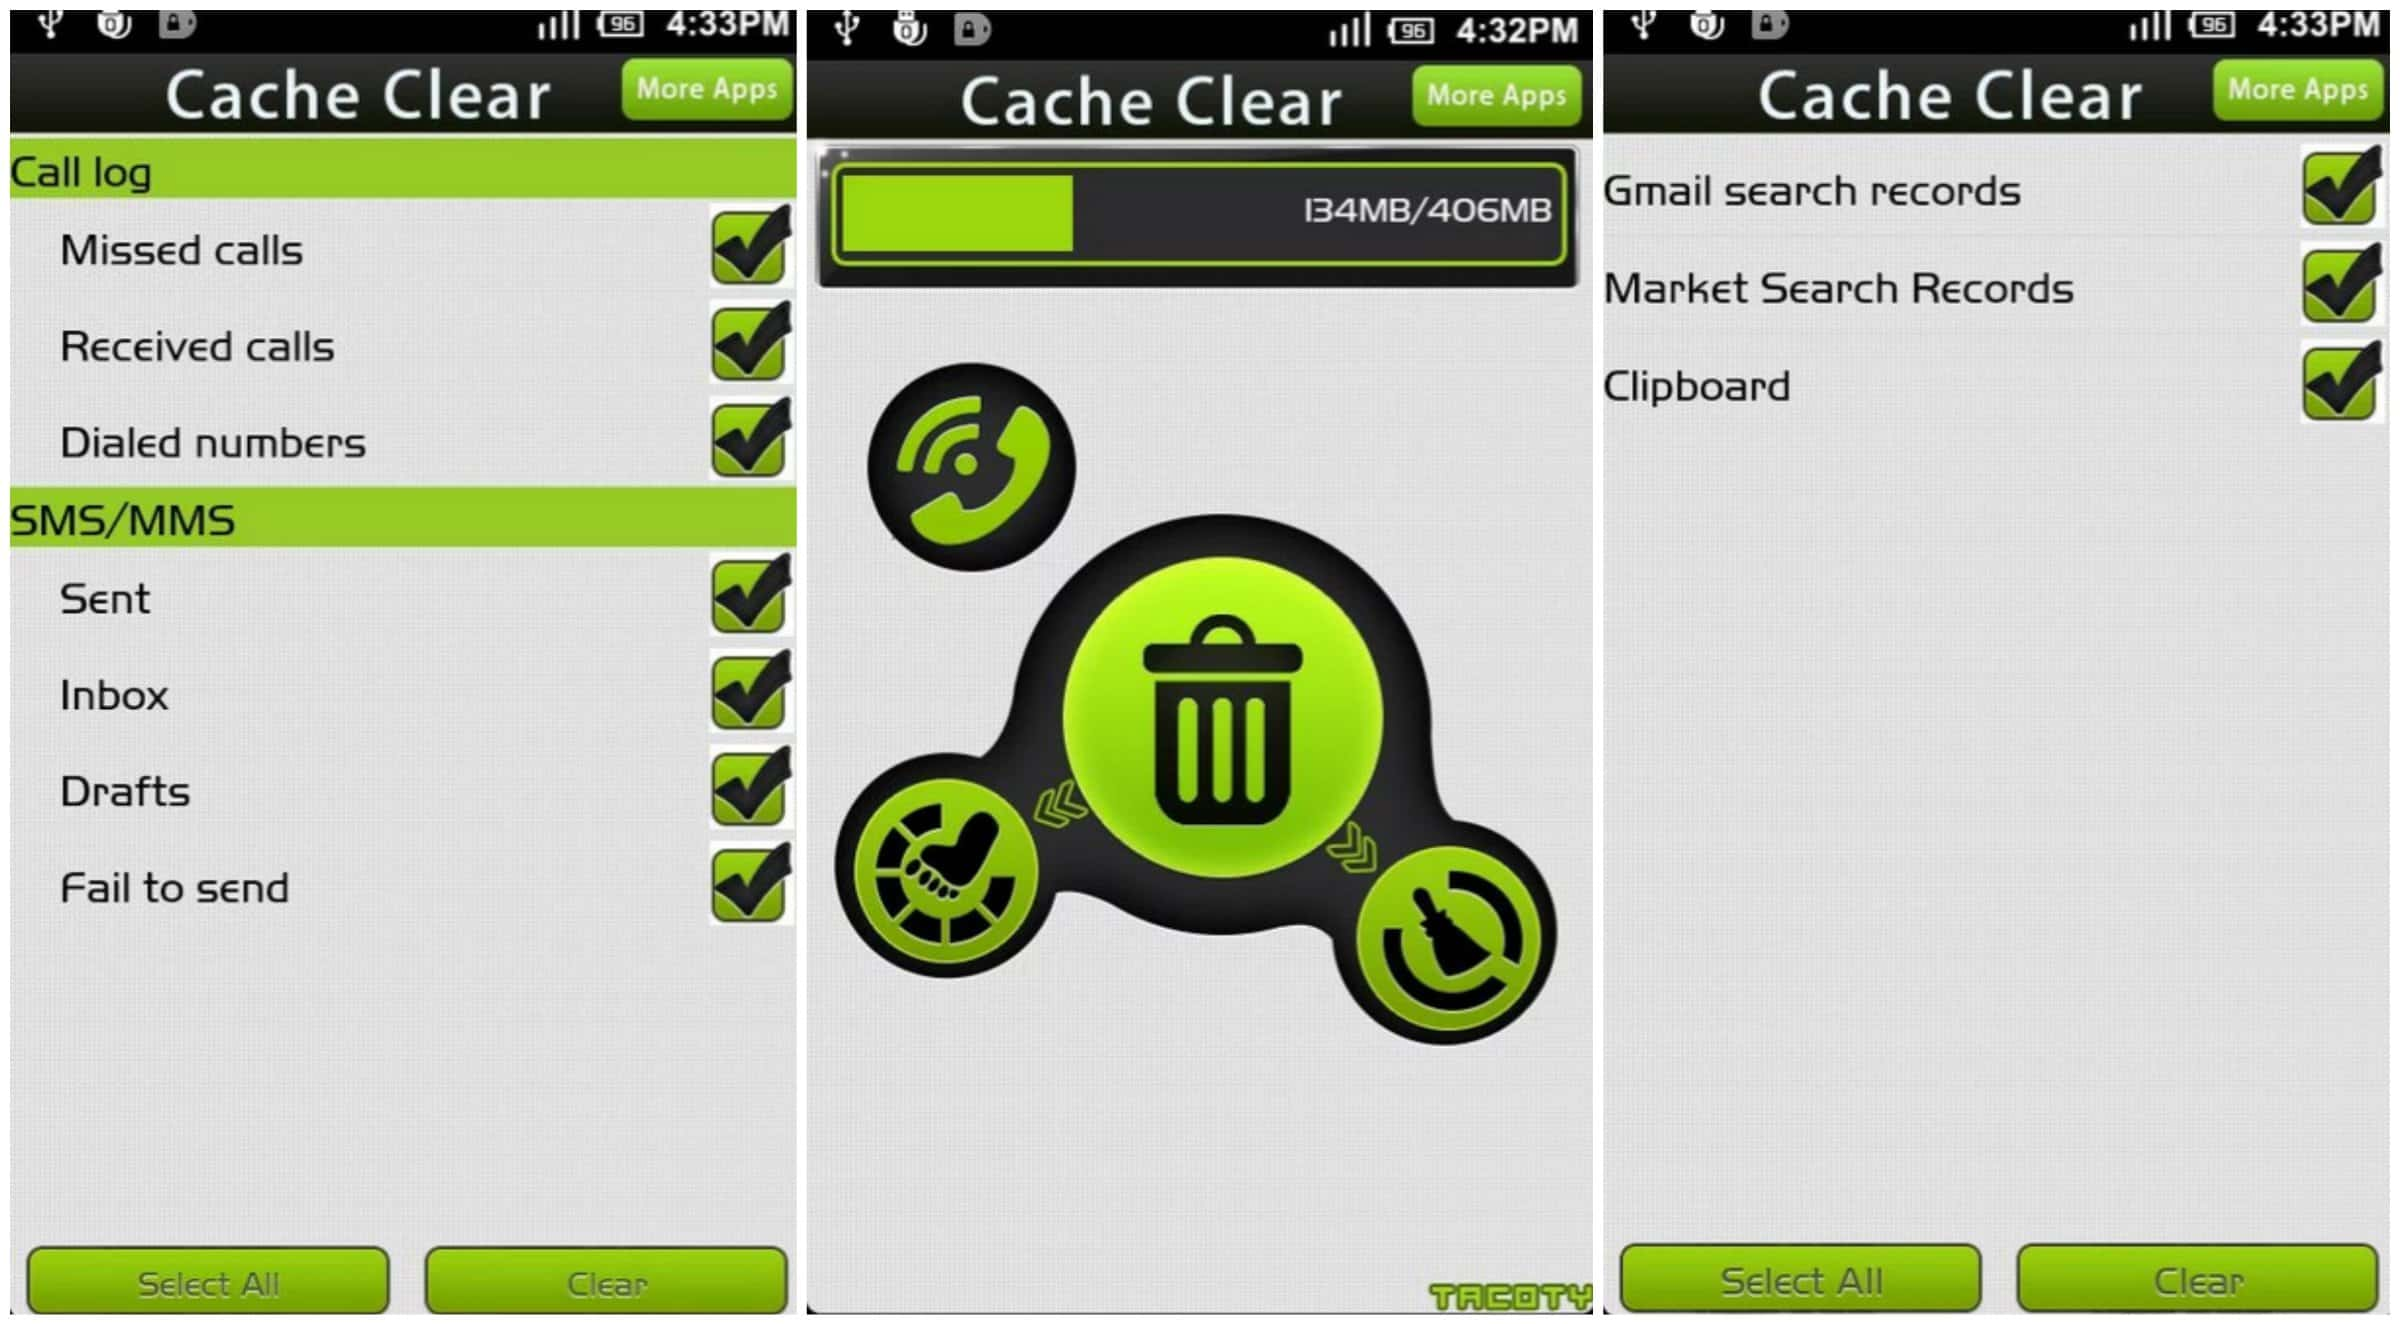 Cache Clear